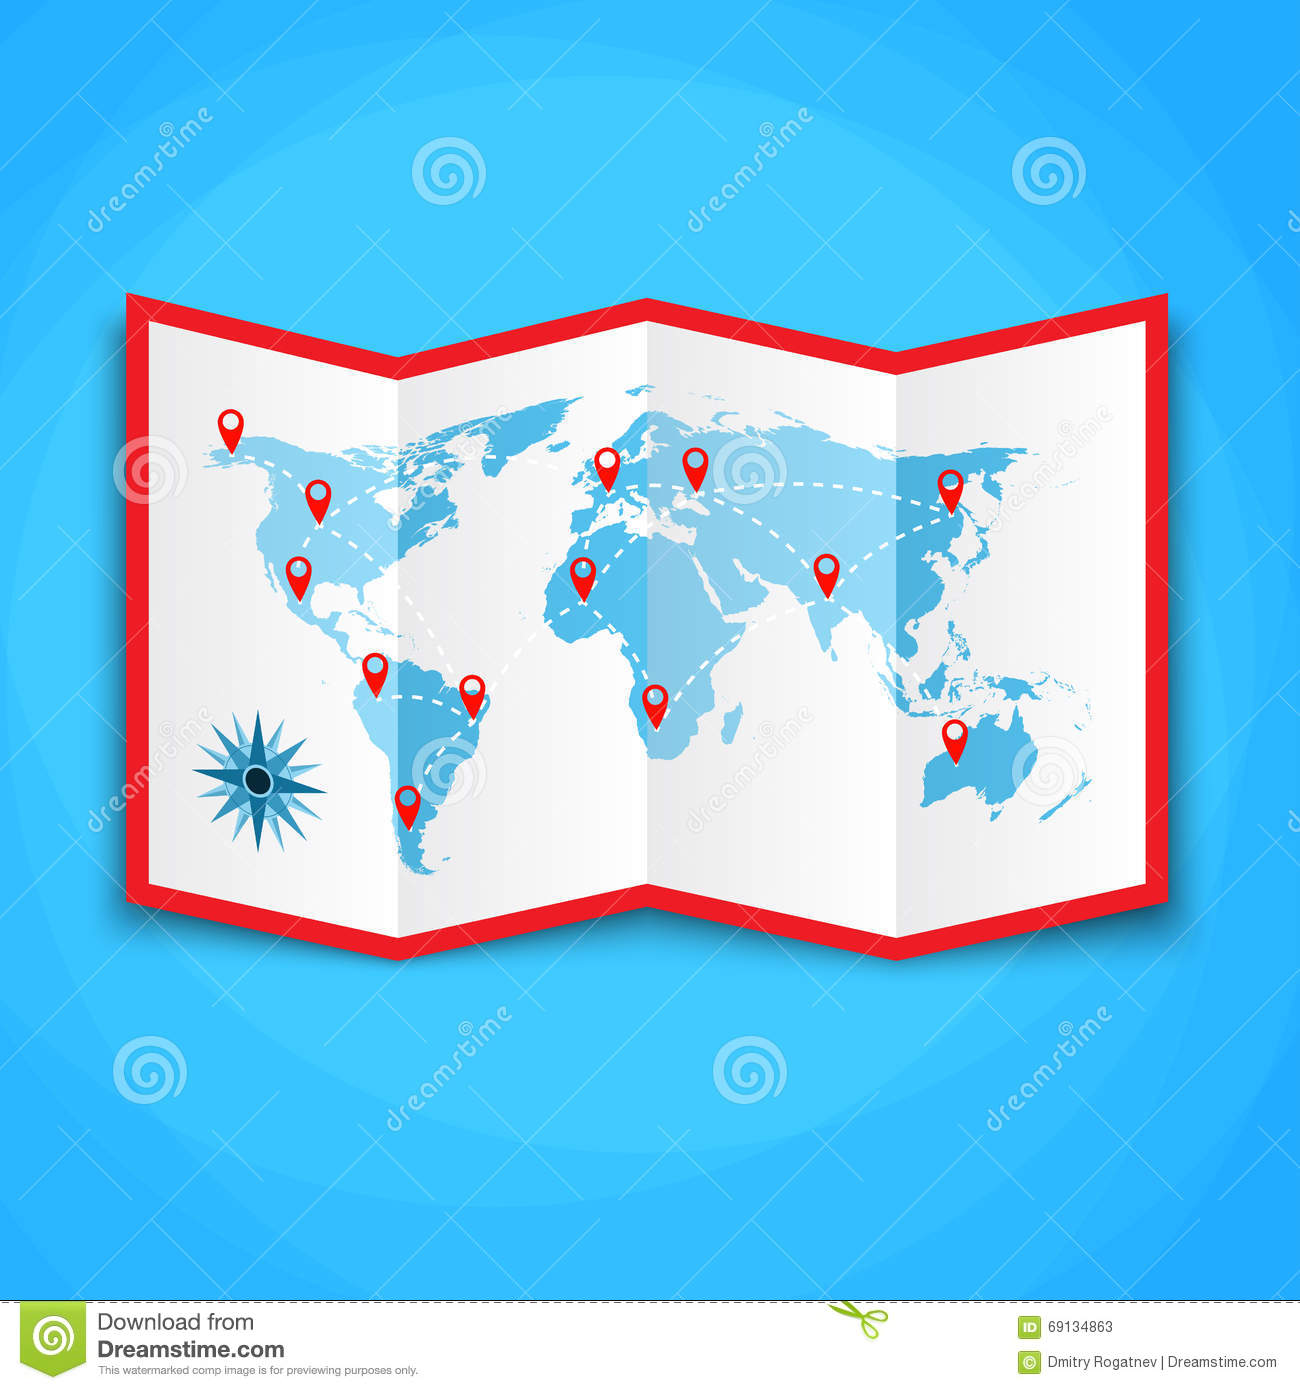 Paper world map with location icons map icon vector map vector paper world map with location icons map icon vector map vector illustration in gumiabroncs Image collections